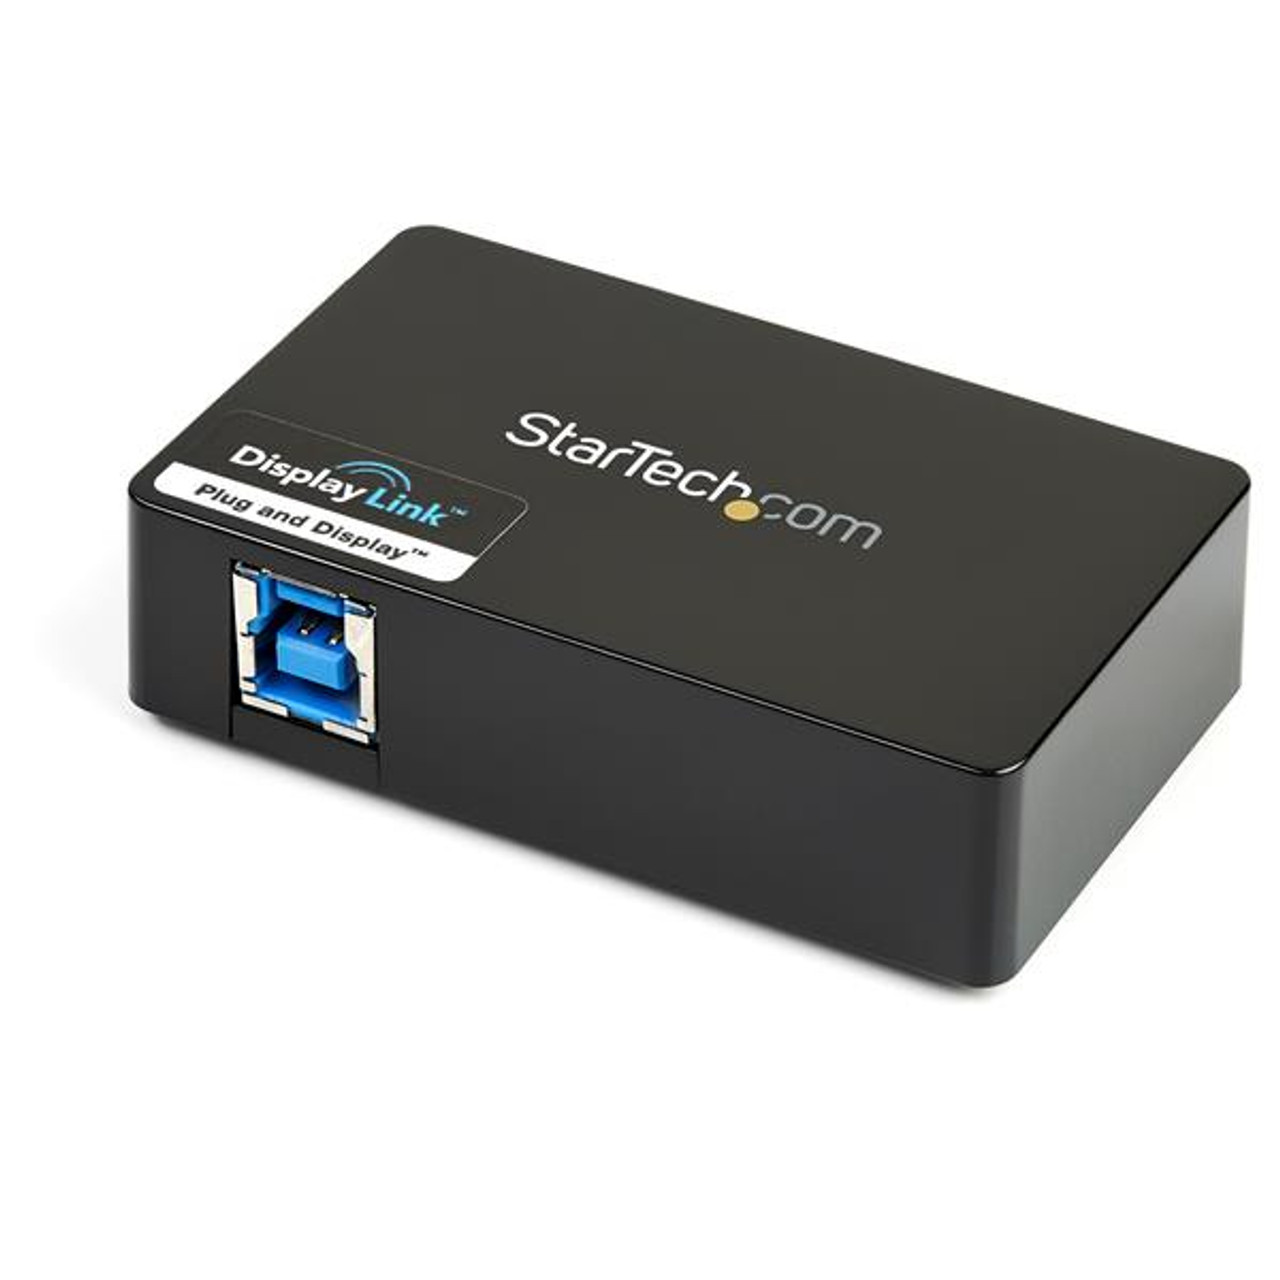 Image for StarTech USB 3.0 to HDMI and DVI Dual Monitor External Video Adapter CX Computer Superstore